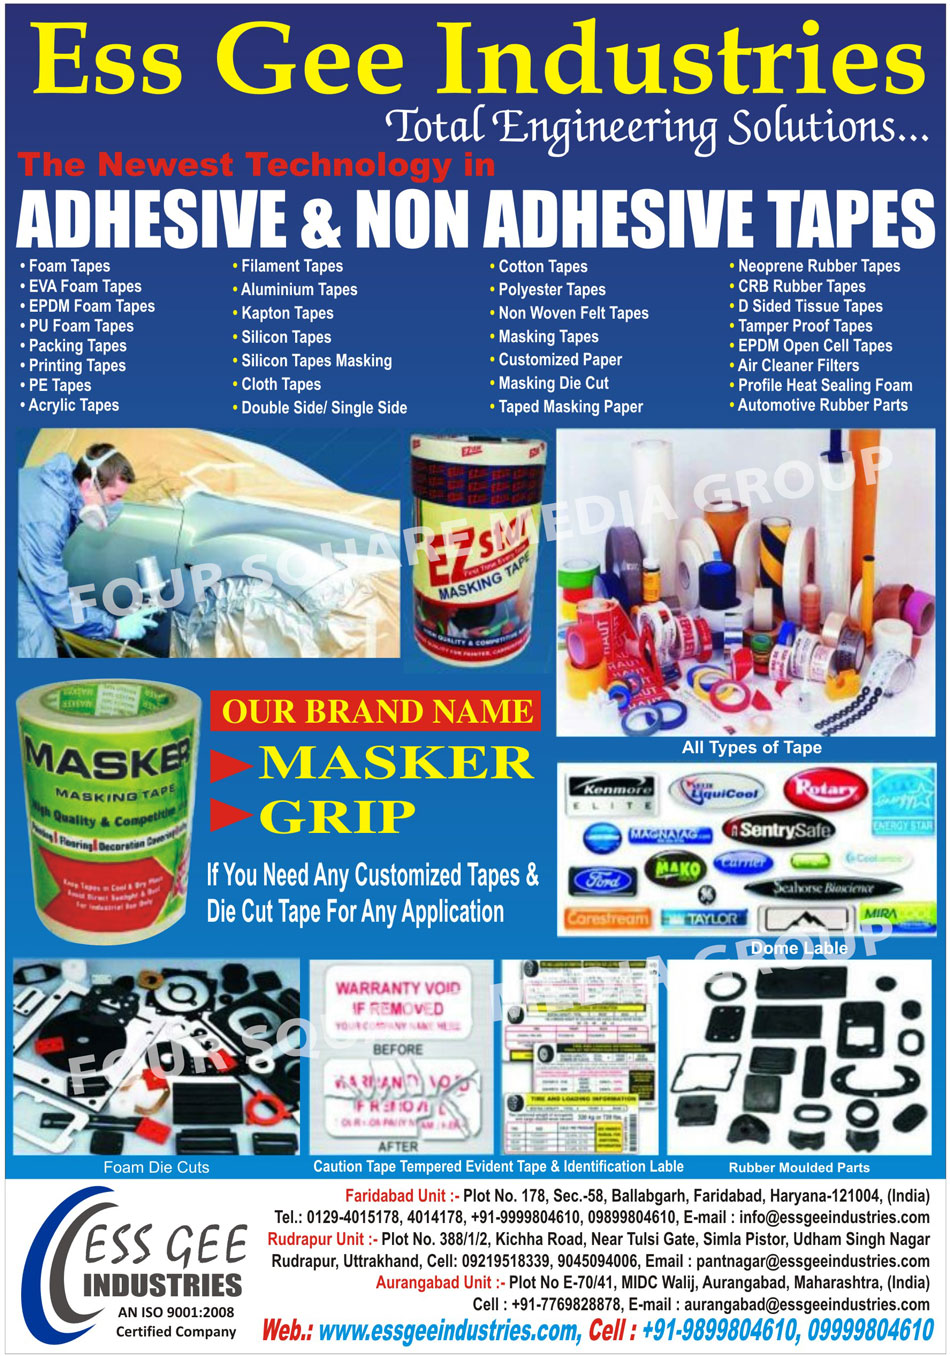 Adhesive Tapes, Non Adhesive Tapes, Foam Tapes, EVA Foam Tapes, EPDM Foam Tapes, PU Foam Tapes, Packing Tapes, Printed Packing Tapes, Plain Packing Tapes, PE Tapes, Filament Tapes, Aluminium Tapes, Kapton Tapes, Silicon Tapes, Silicon Rubber Maskings, Cloth Tapes, Double Side Cloth Tapes, Single Side Cloth Tapes, Dome Labels, Cotton Tapes, Polyester Tapes, Non Woven Felt Tapes, Masking Tapes, Customized Paper Masking Die Cut, Taped Masking Paper, Neoprene Rubber Tapes, Tamper Proof Tapes, EPDM Open Cell Tapes, Profile Heat Sealing Foam, Automotive Rubber Parts, Warning Labels, Safety Labels, Acrylic Tapes, CRB Rubber Tapes, D Sided Tissue Tapes, Customized Tapes, Customised Tapes, Customized Die Cut Tapes, Customised Die Cut Tapes, Printing Tapes, Silicon Masking Tapes, Air Cleaner Filters, Foam Die Cuts, Caution Tapes, Tampered Evident Tapes, Identification Labels, Rubber Moulded Parts, Brand Name Masker Tapes, Grip Tapes, Tapes